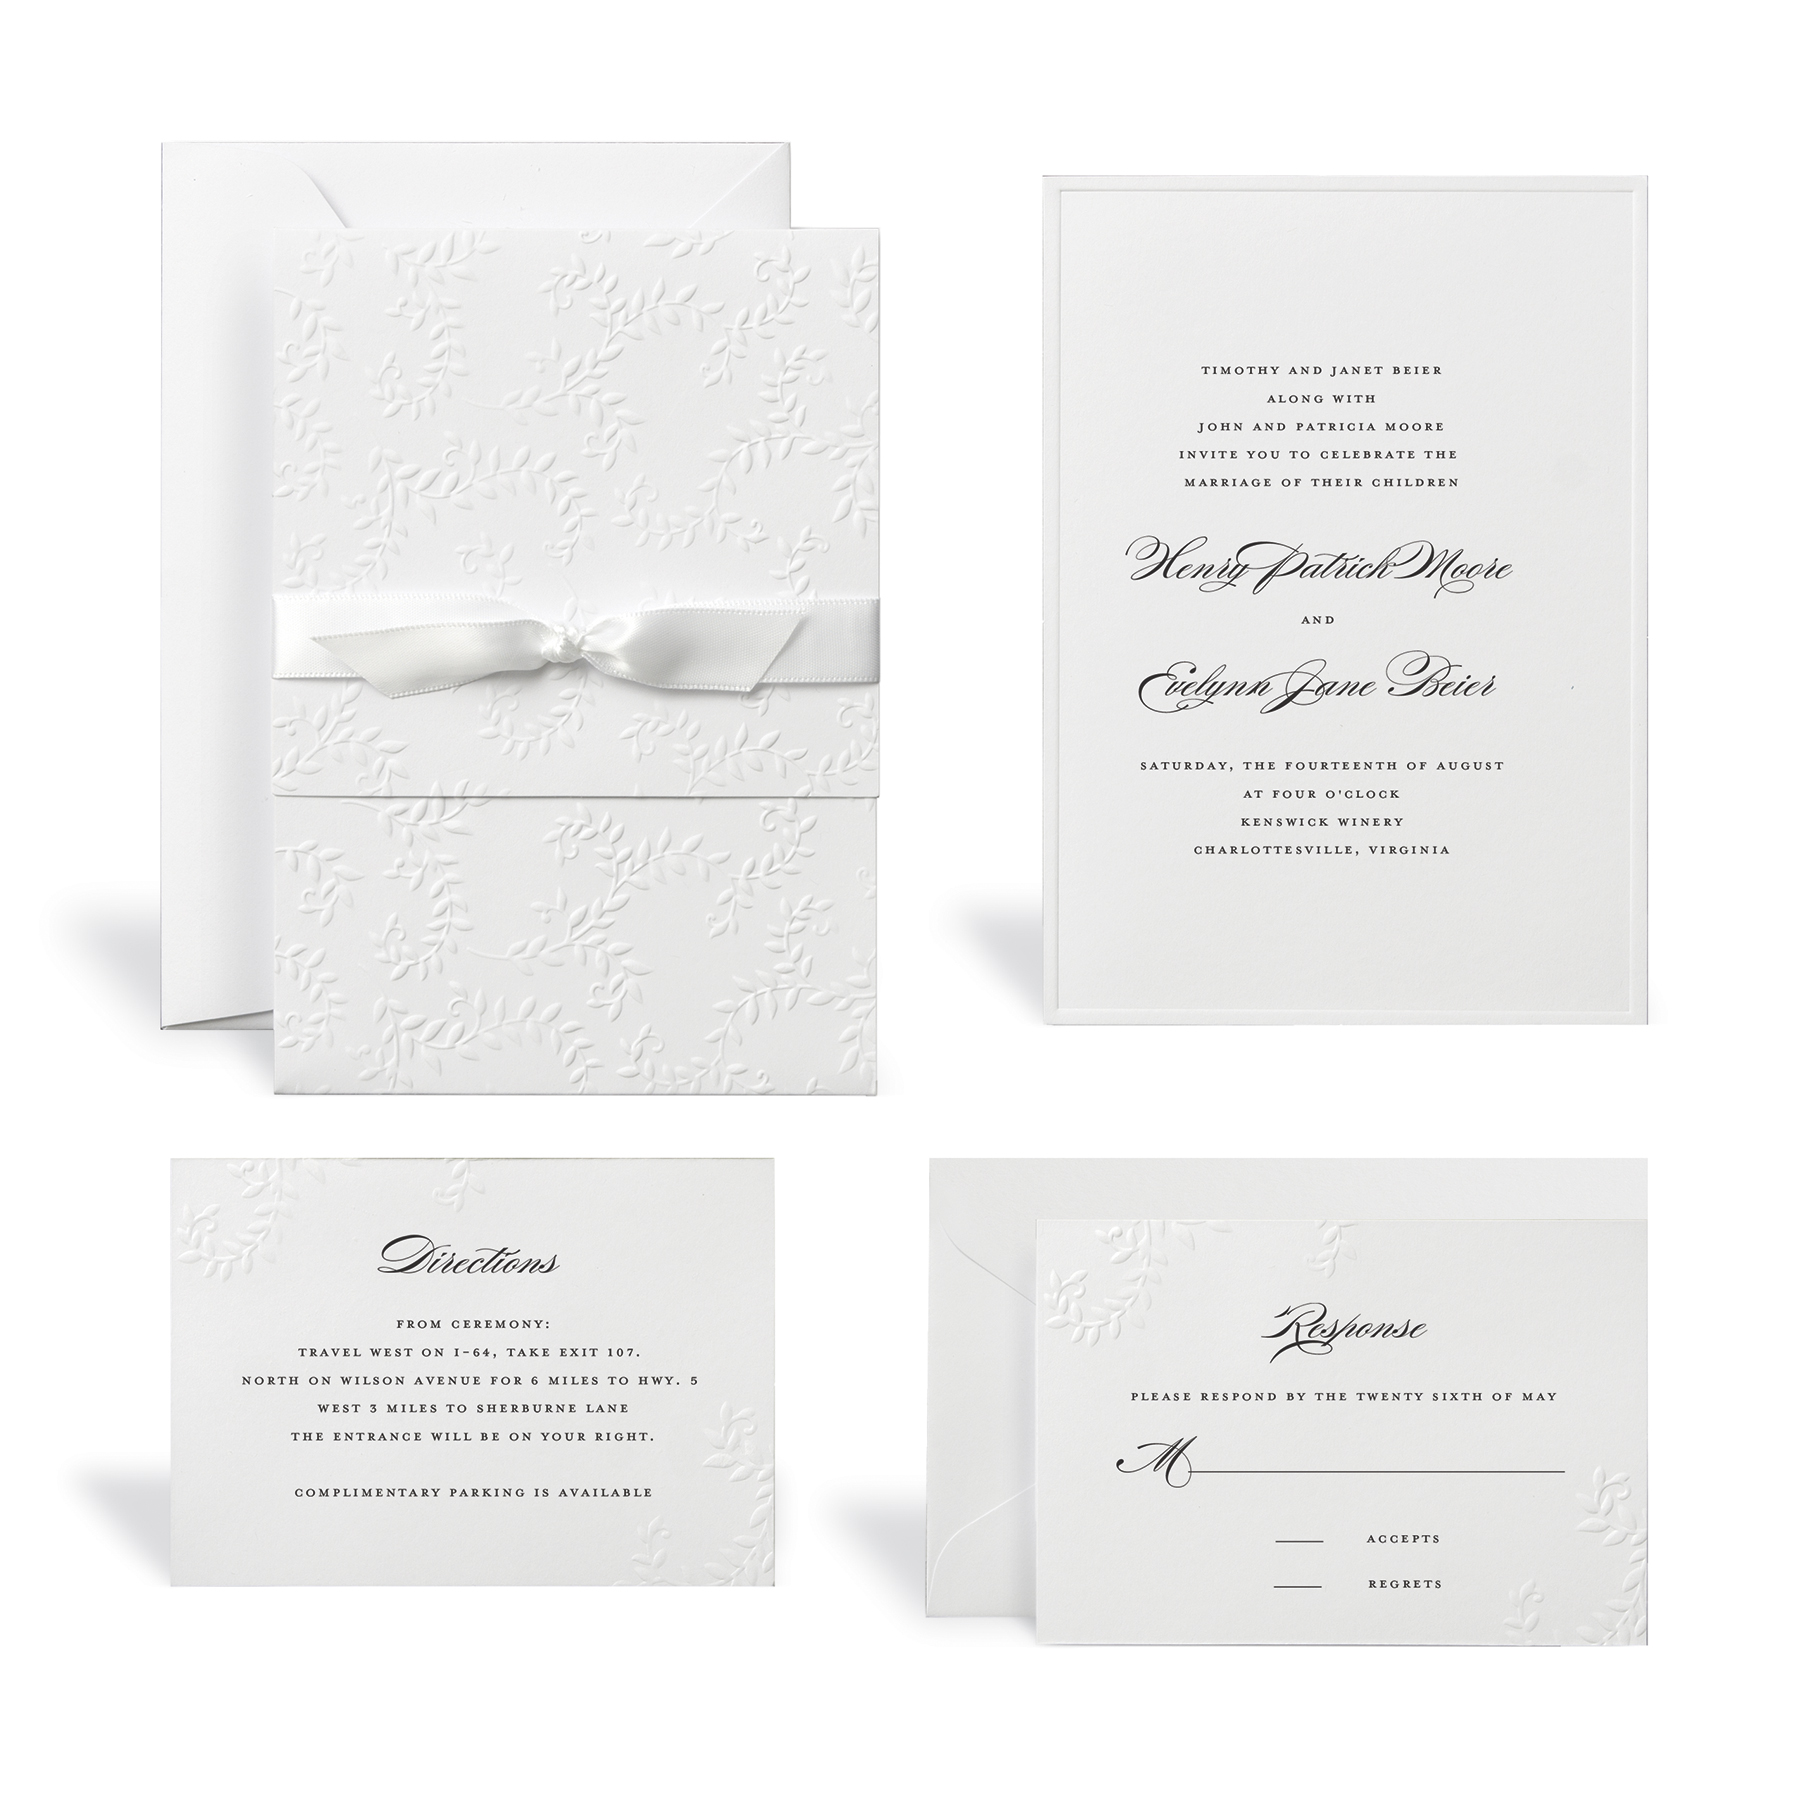 100 Preprinted Blank Wedding Programs Ring and Flower Design